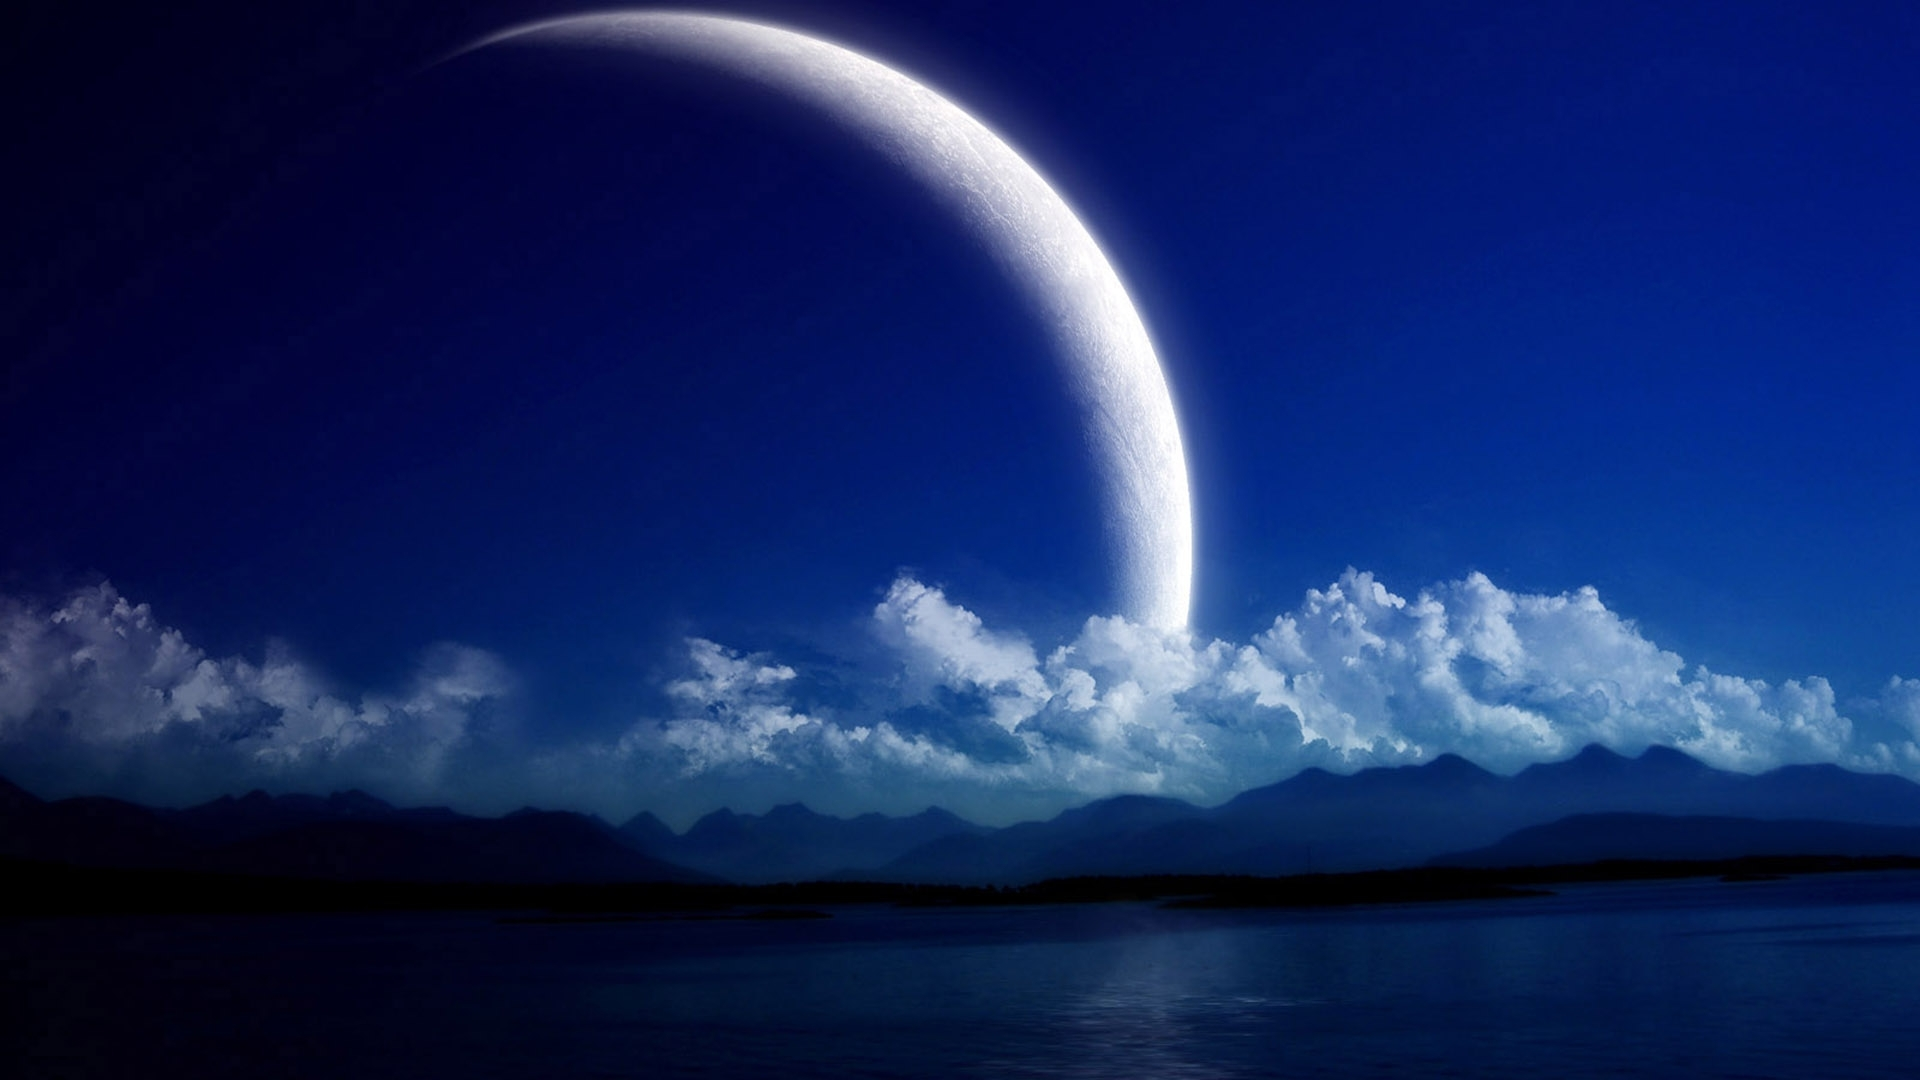 Download mobile wallpaper Landscape, Fantasy, Mountains, Sea, Clouds, Moon for free.